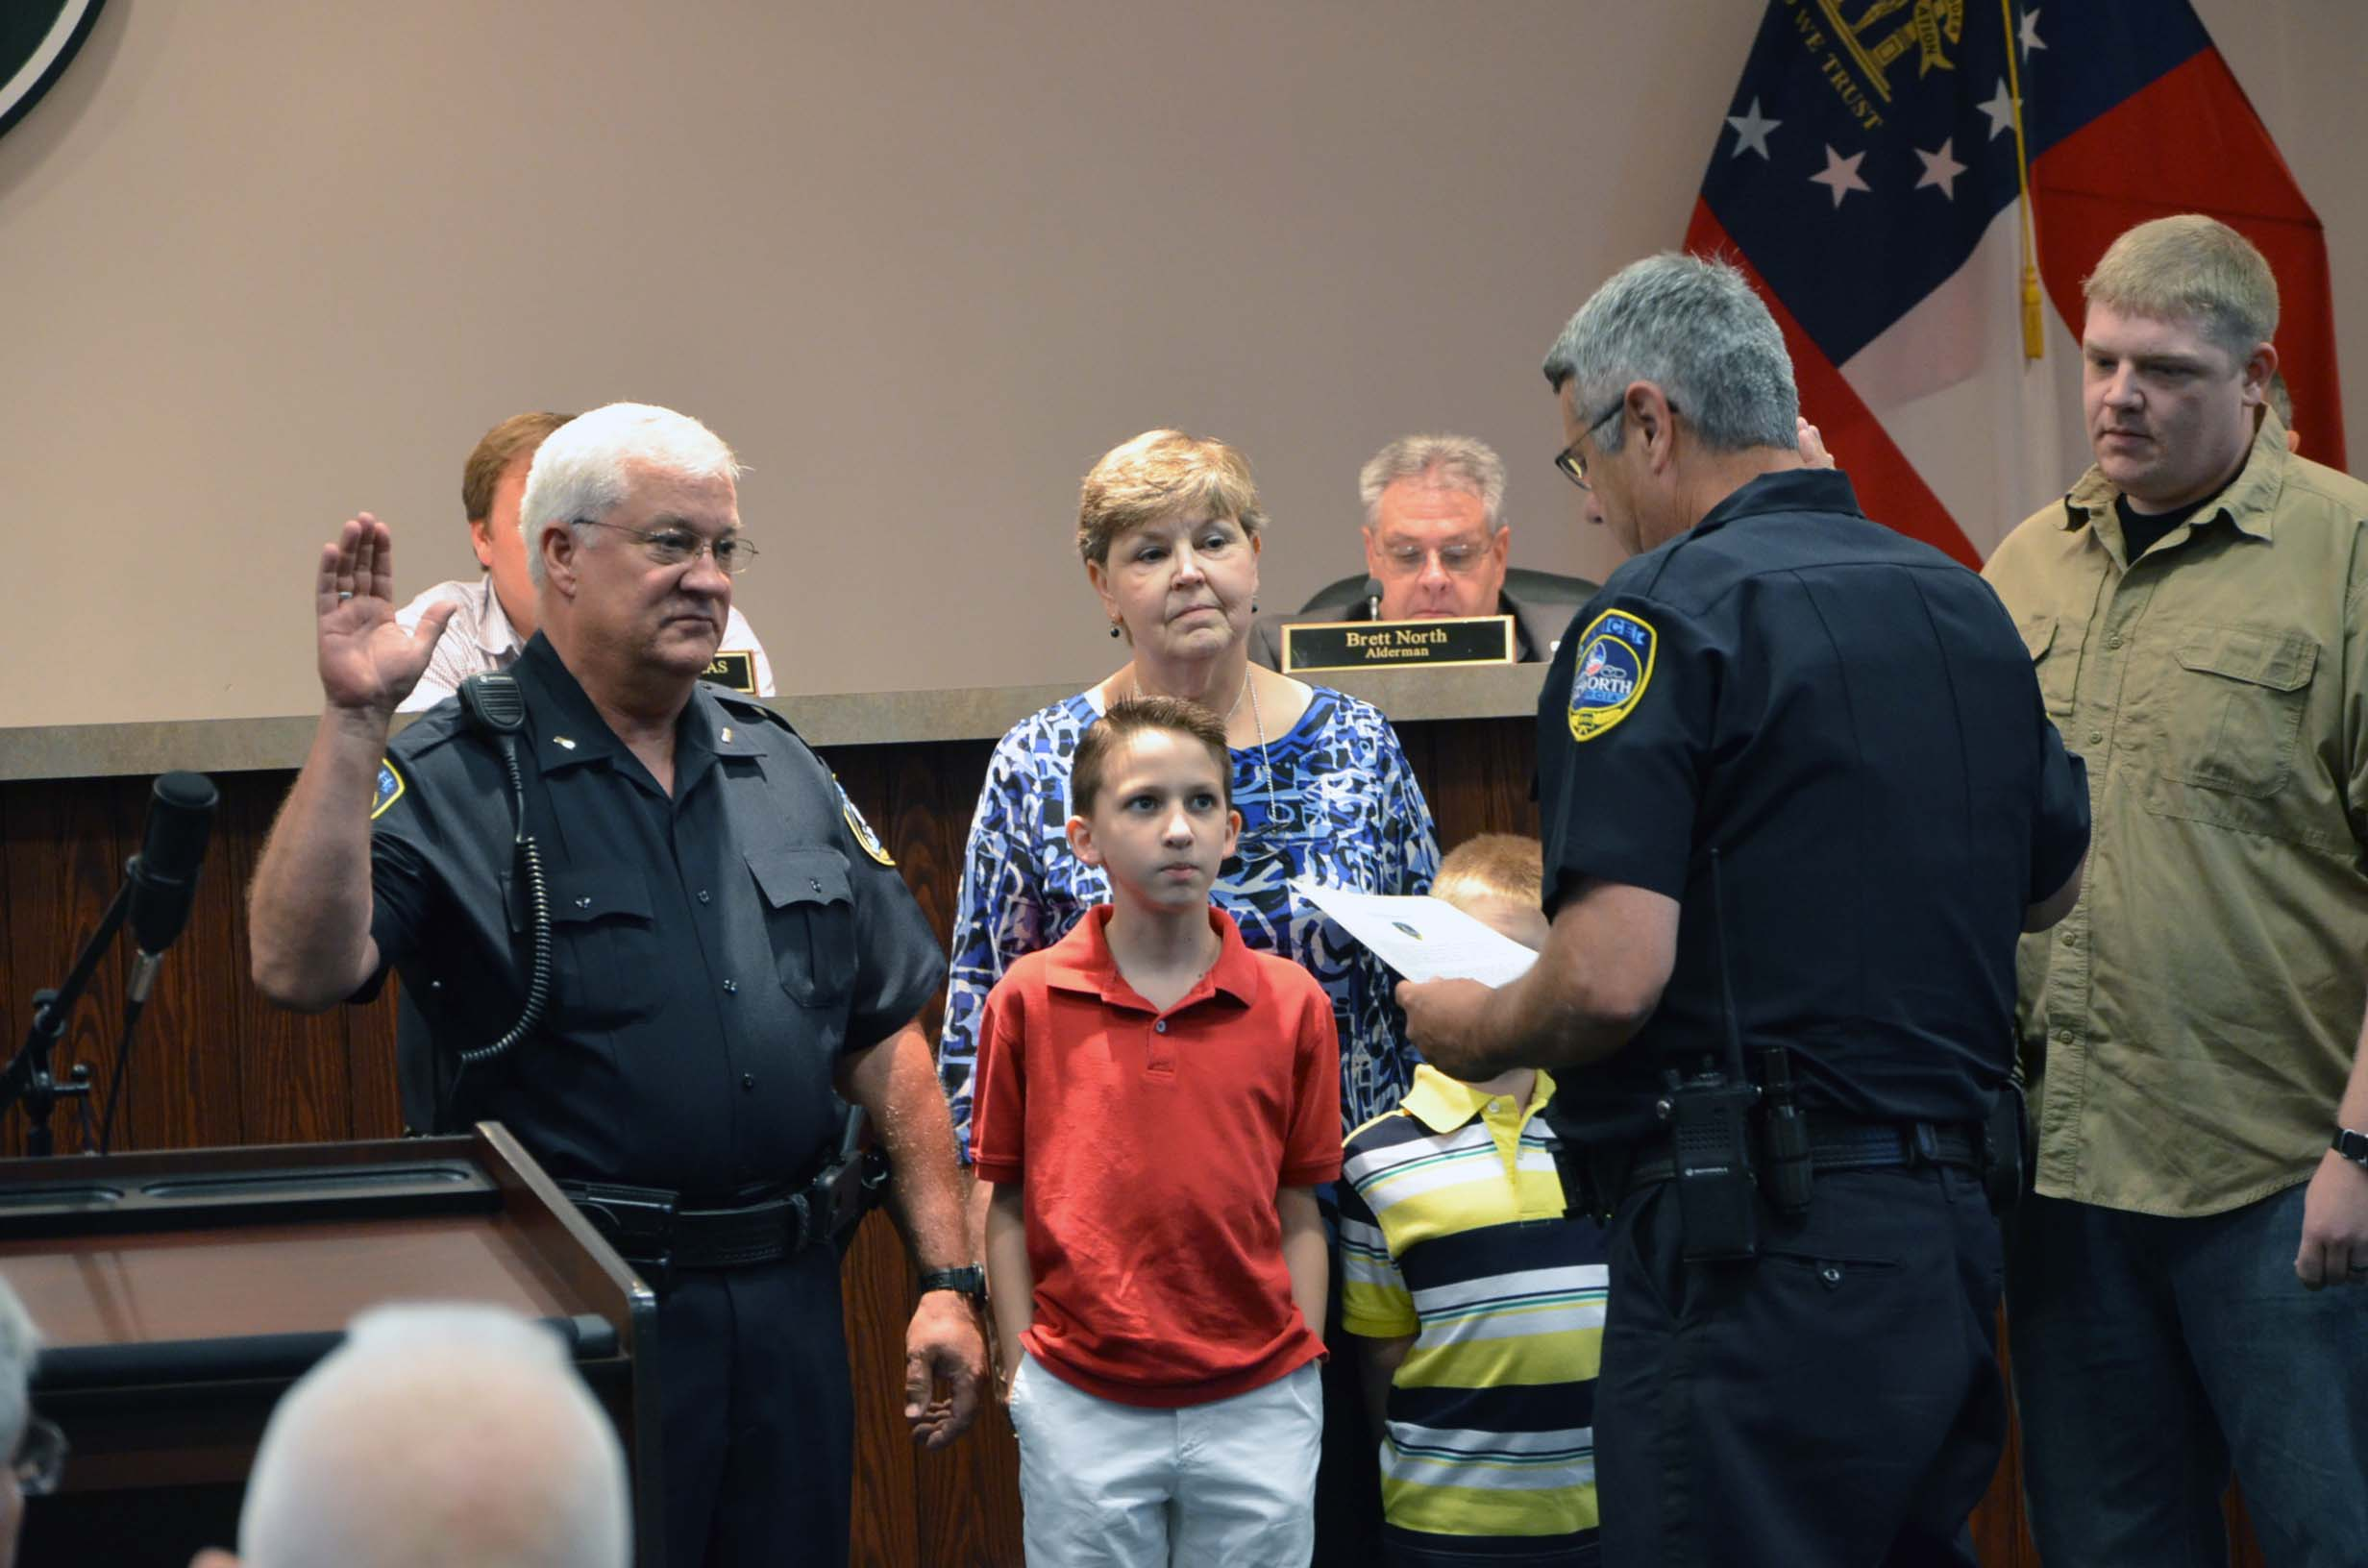 Oath of Office to Rank of Lieutenant for Kenny King 3